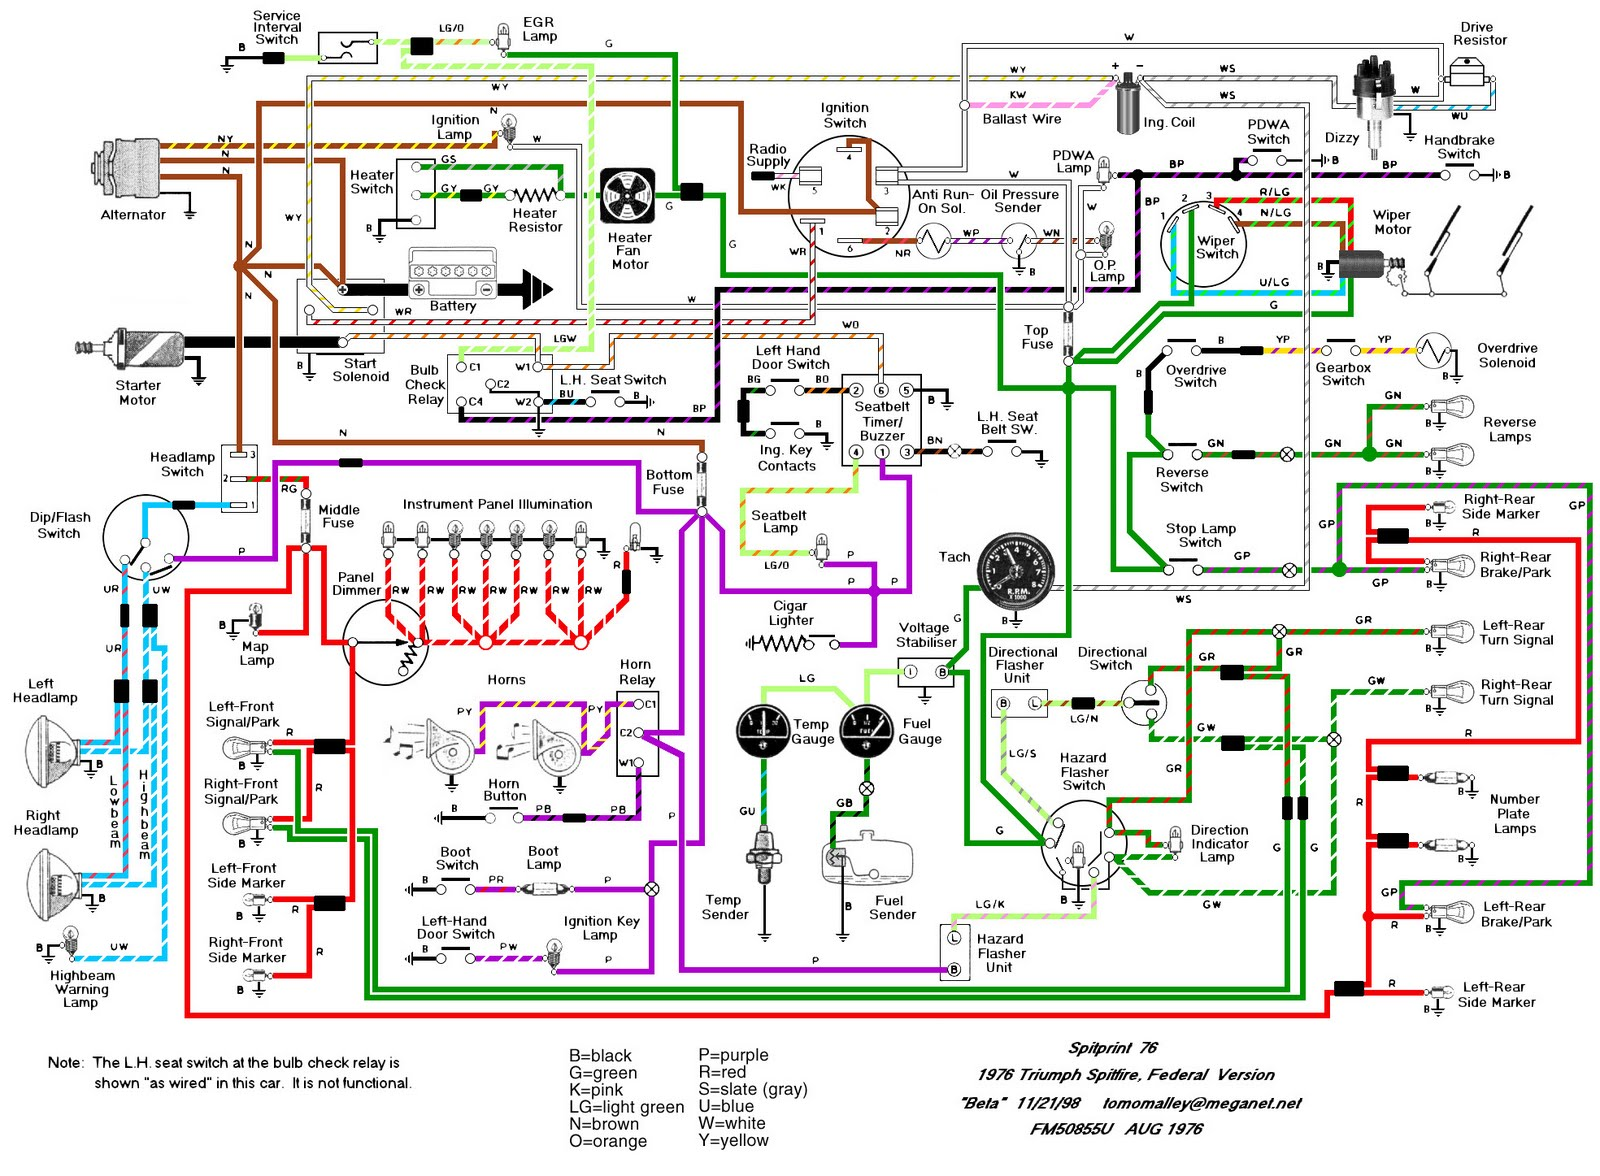 peterbilt horn wiring diagram with 1976 Triumph Spitfire Wiring Diagram on 1useo 02 Dodge Grand Caravan W 3 3l V6 Engine Will Not Start together with 1976 Triumph Spitfire Wiring Diagram also 89 Mustang Headlight Problems furthermore Question 6858 likewise Steering Suspension Diagrams.